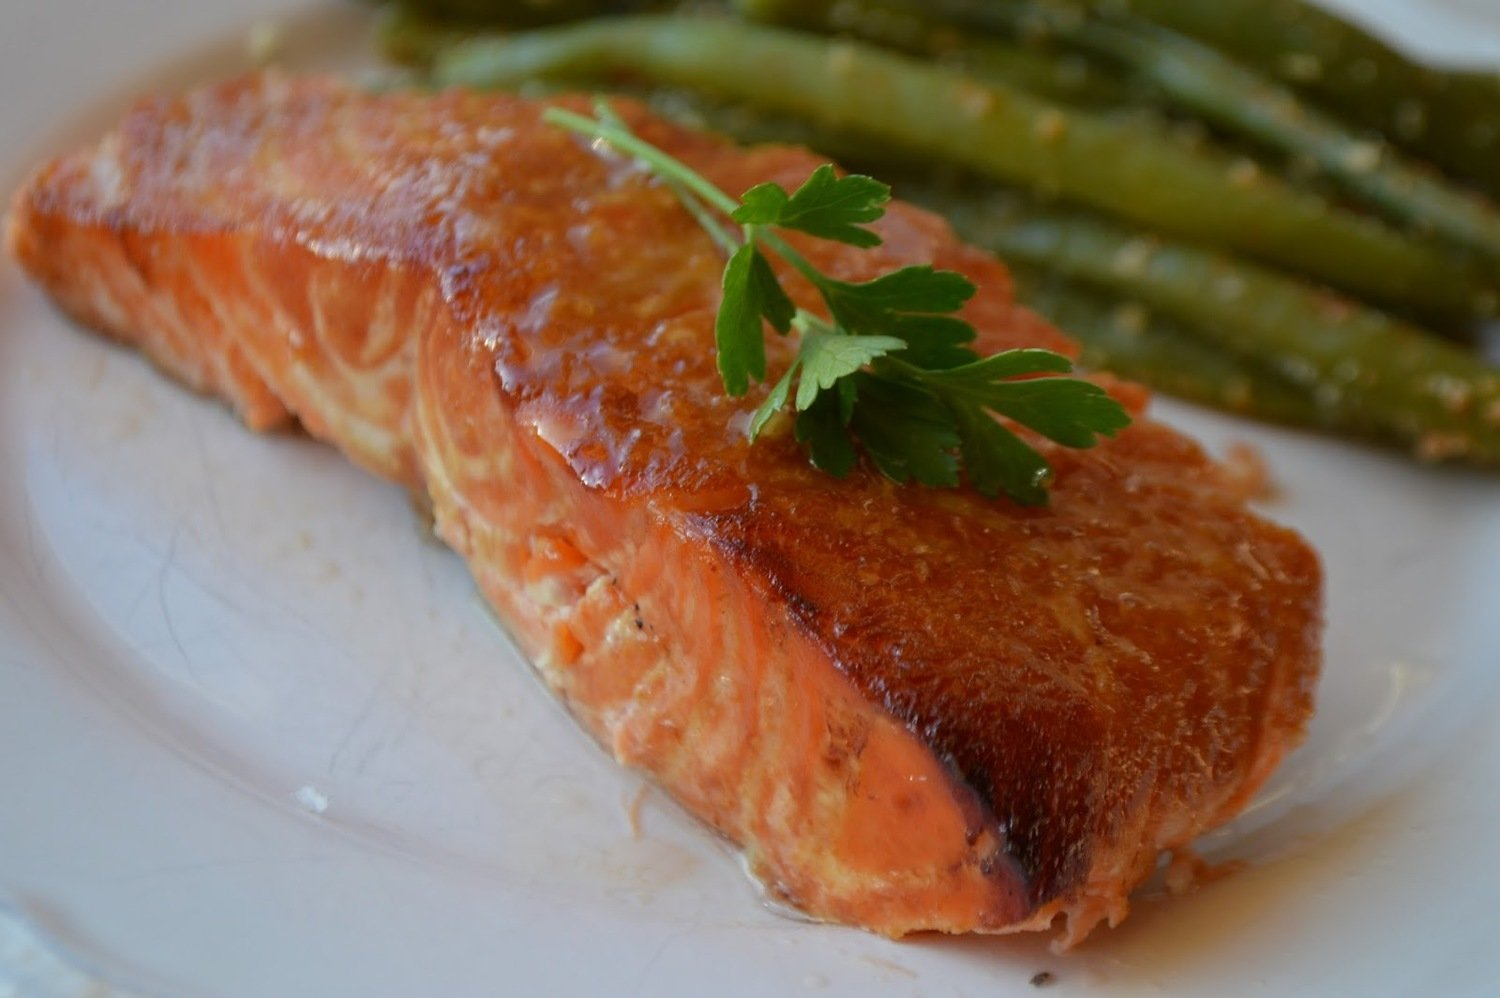 Cafe Infused Salmon Portion Baked in Real Wood sMoke